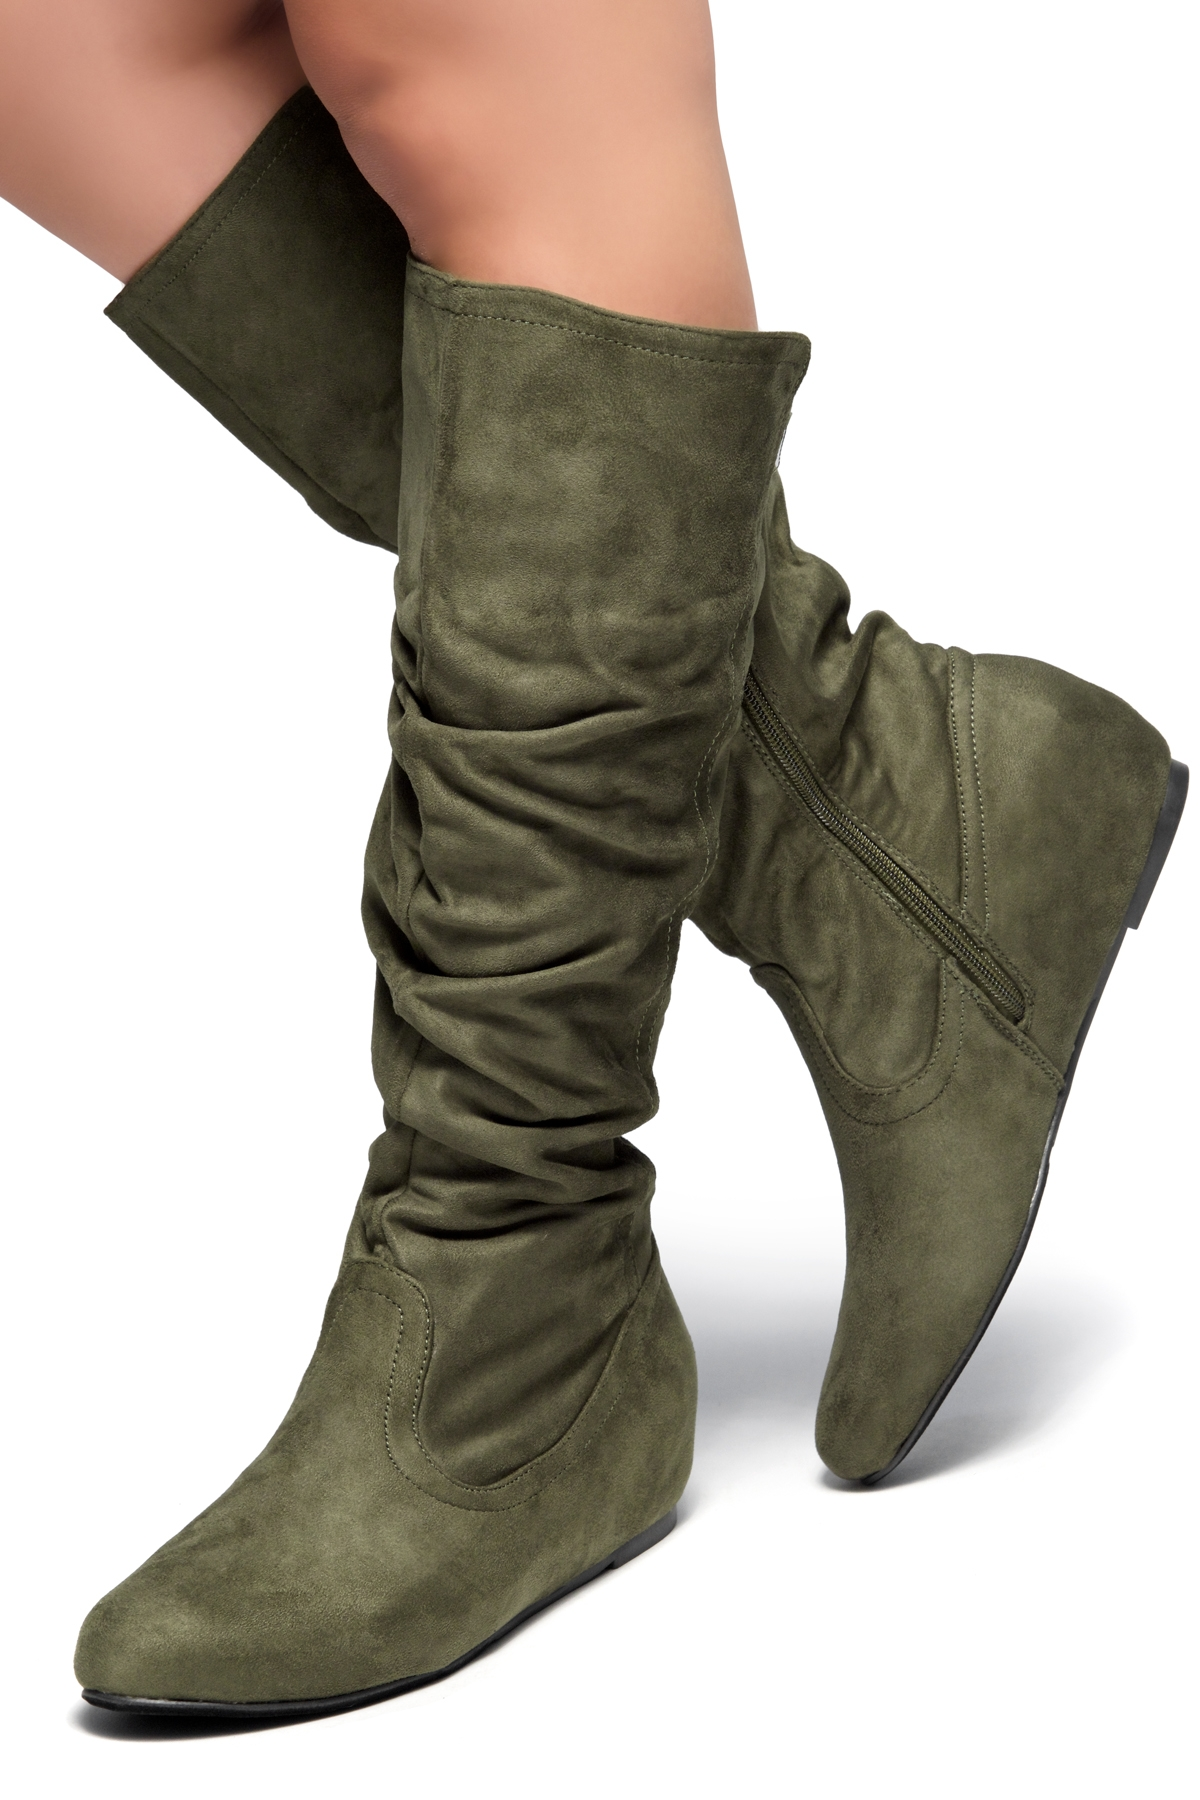 ce7e927ef754 HerStyle Women s Wide Calf Faux Suede Slouchy Hidden Wedge Boot ROSEMARRY  (Olive)